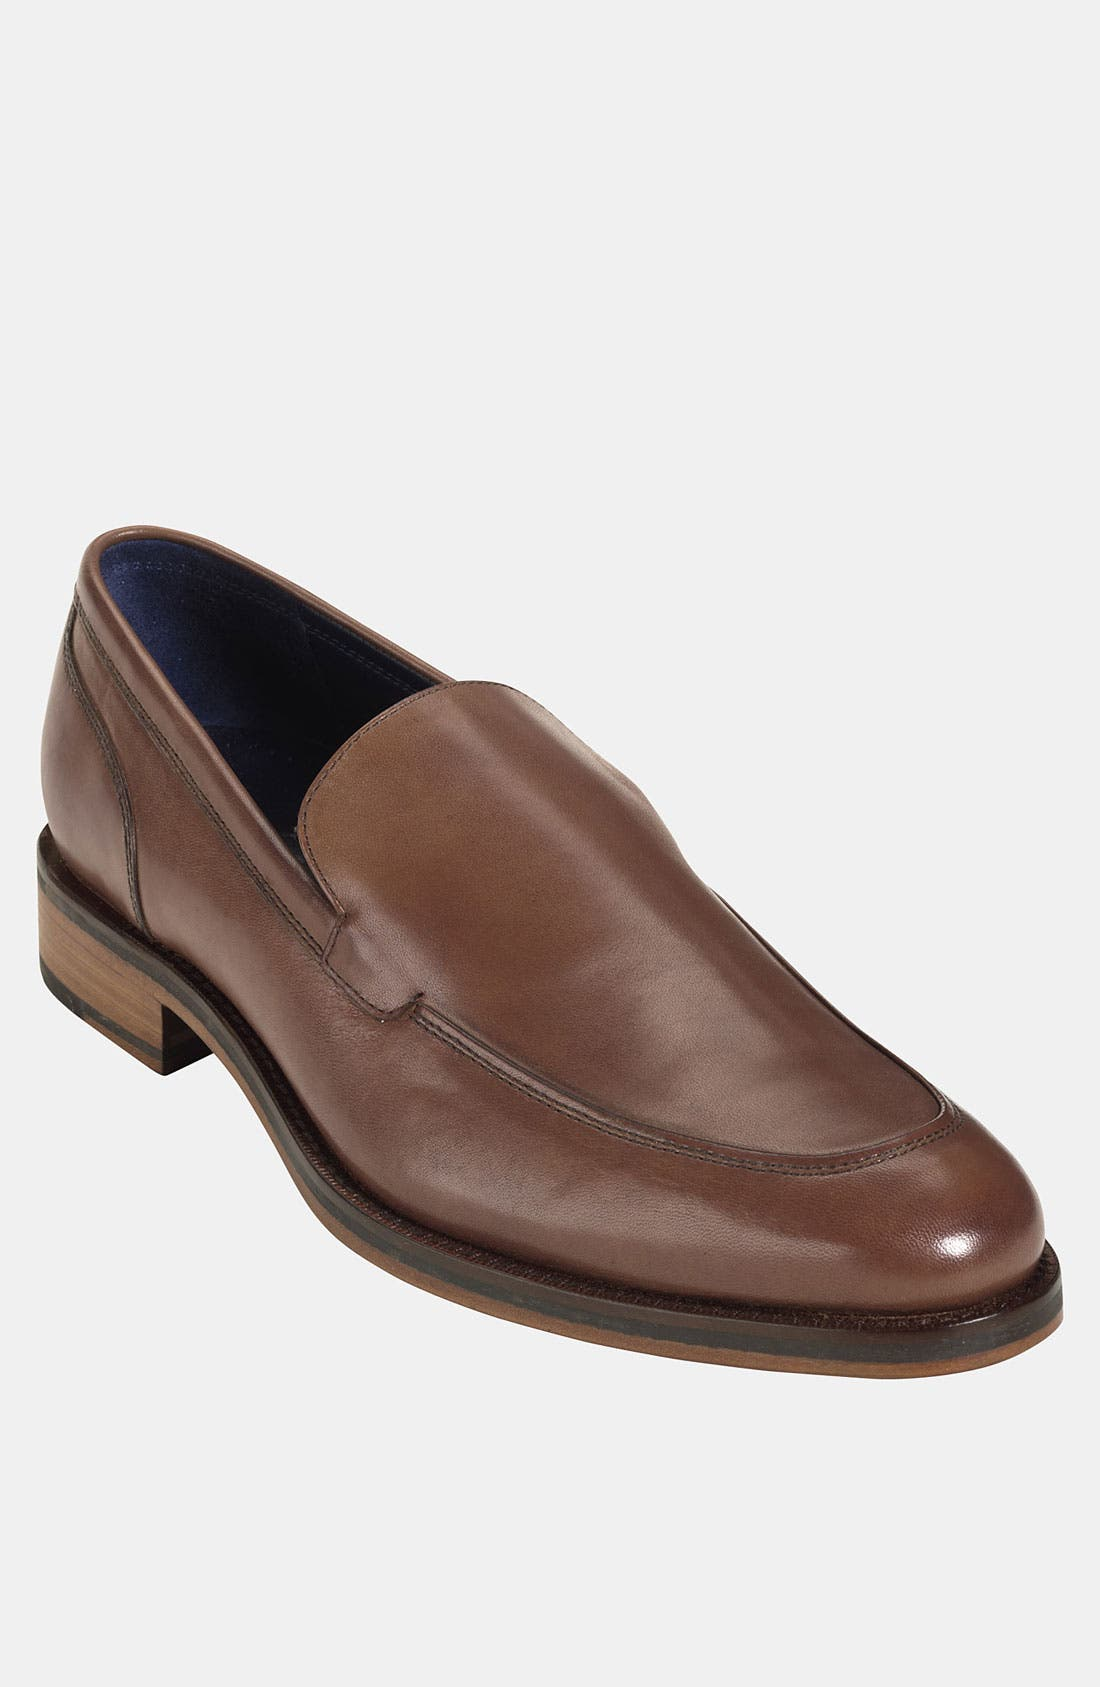 Alternate Image 1 Selected - Cole Haan 'Air Madison' Venetian Loafer